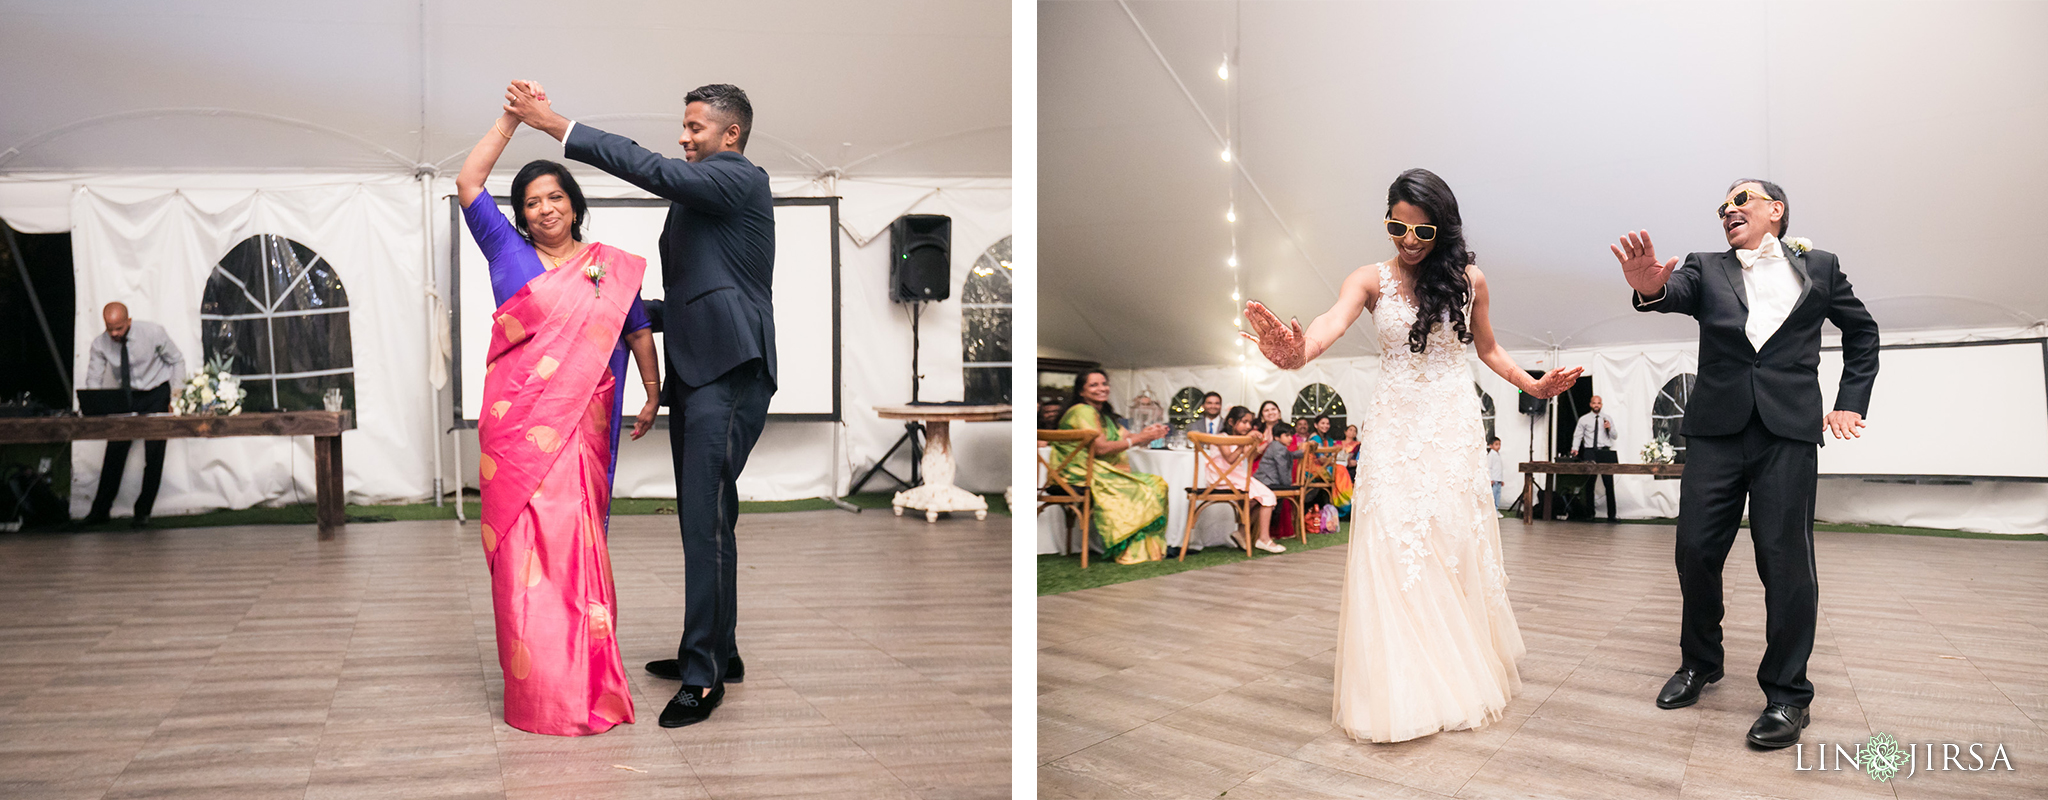 32 Ethereal Open Air Resort Indian Wedding Photography